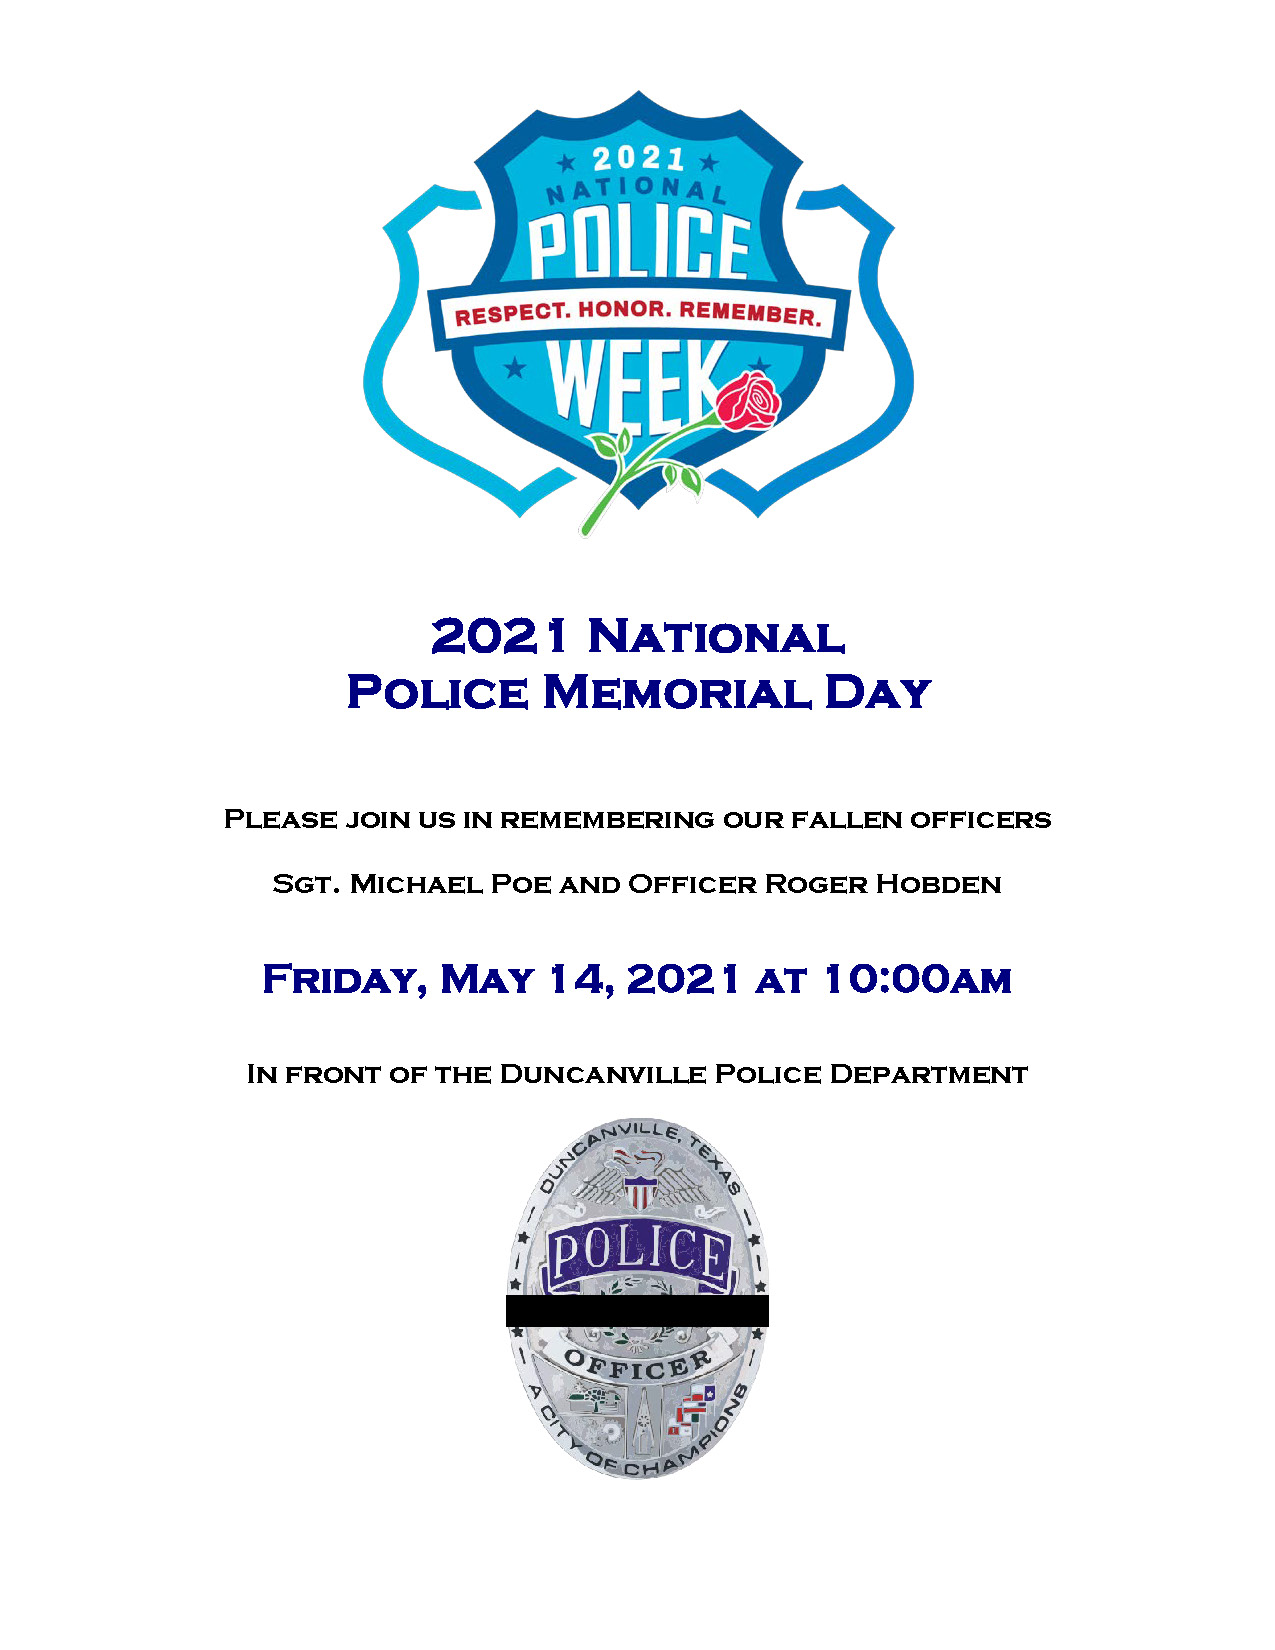 Police Memorial Day flyer 2021